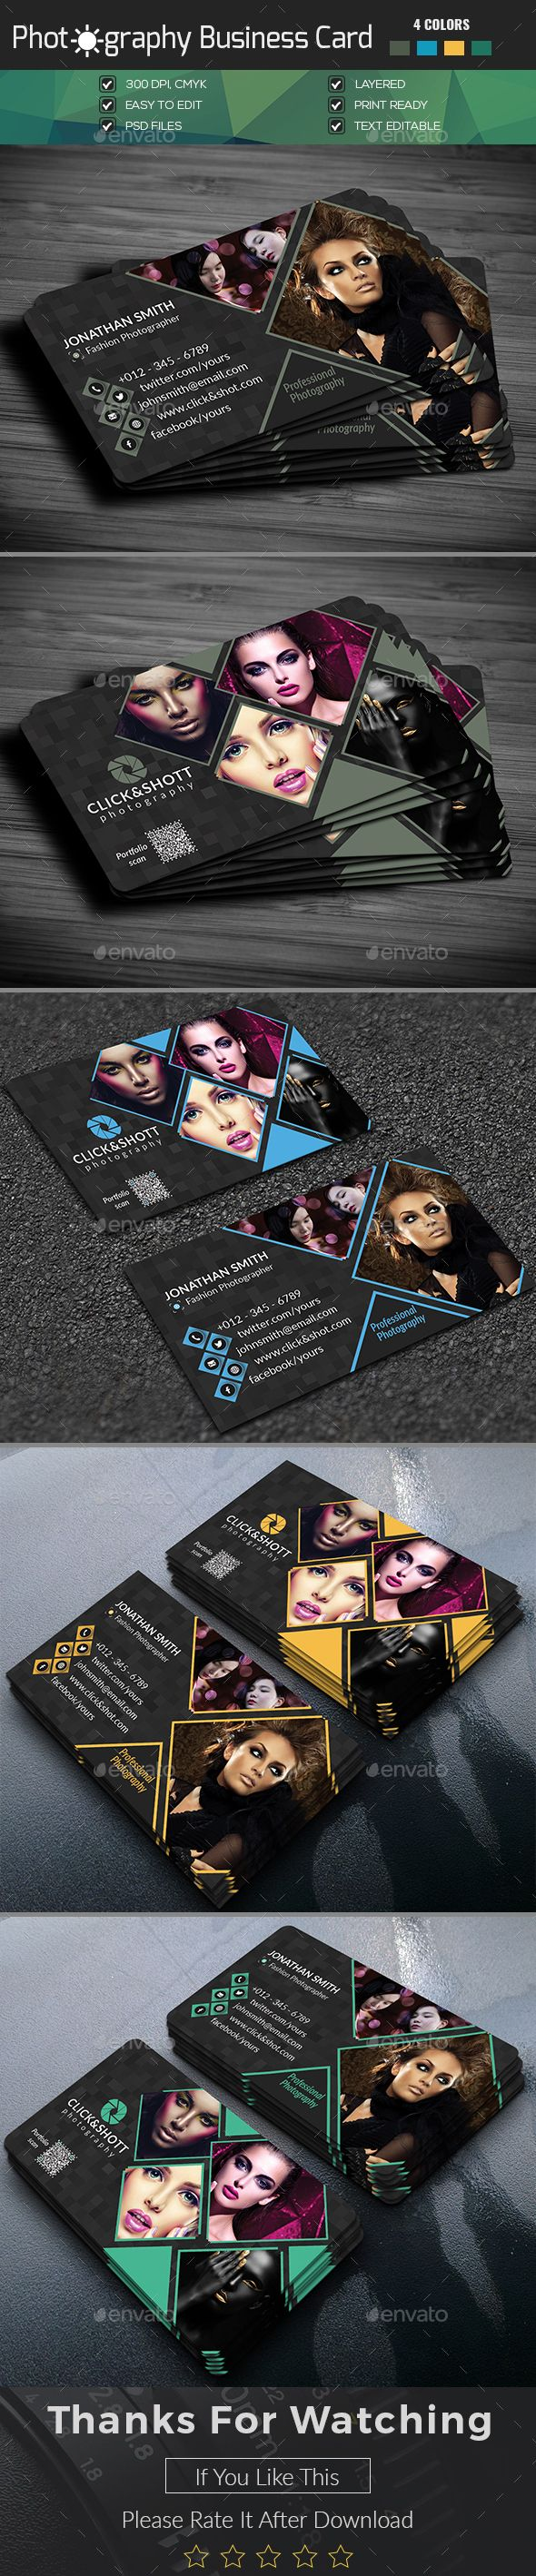 Photography Business Card - Business Cards Print Templates Download here : https://graphicriver.net/item/business-card-tem28/19159430?s_rank=158&ref=Al-fatih